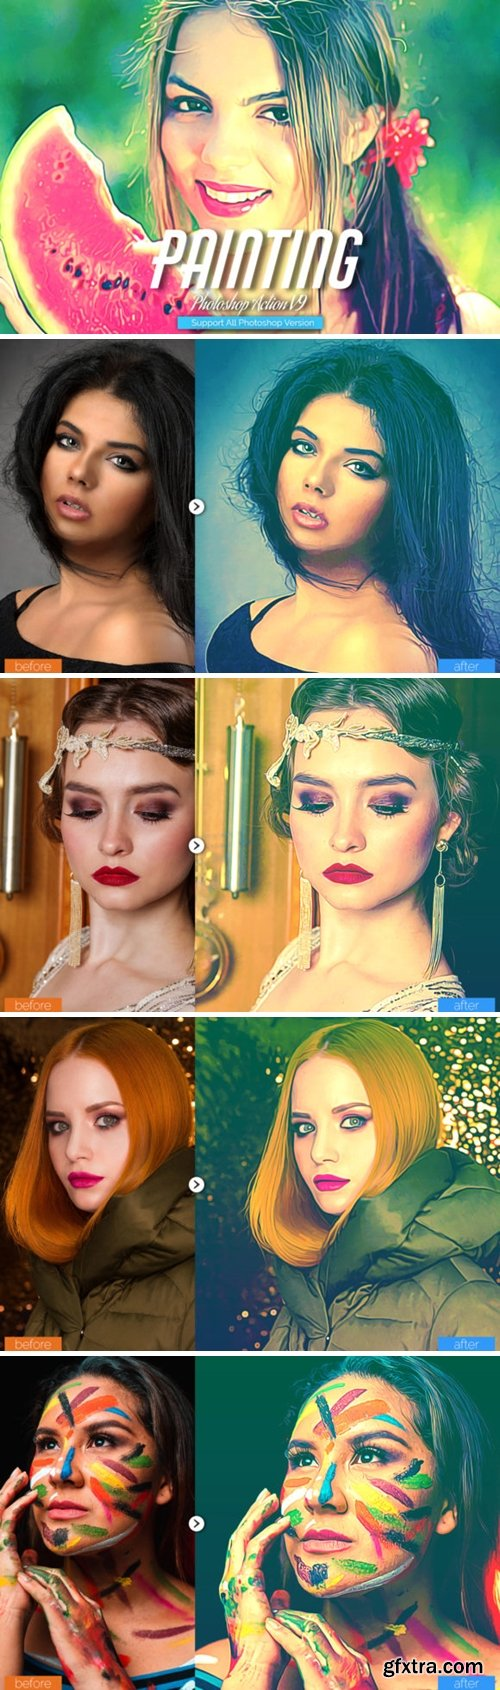 Painting Photoshop Action V9 5732711